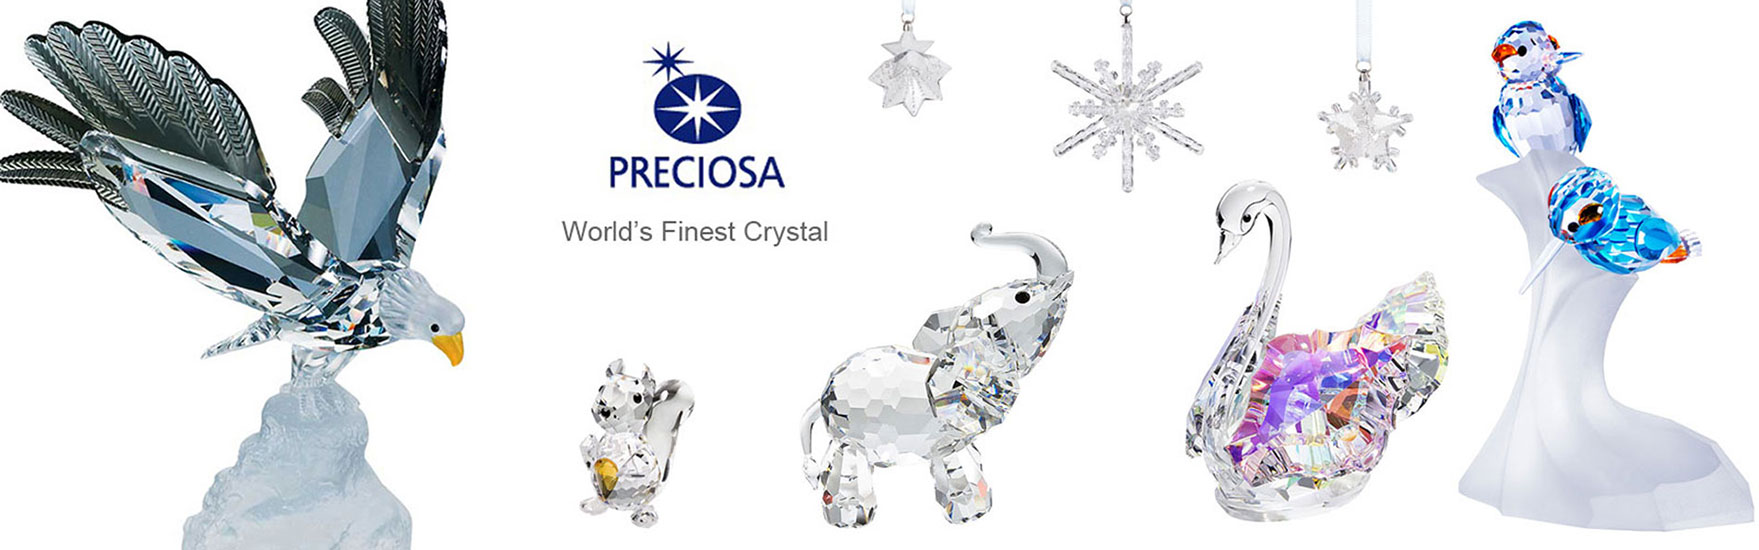 Preciosa Crystal Figurines and Crystal Gifts